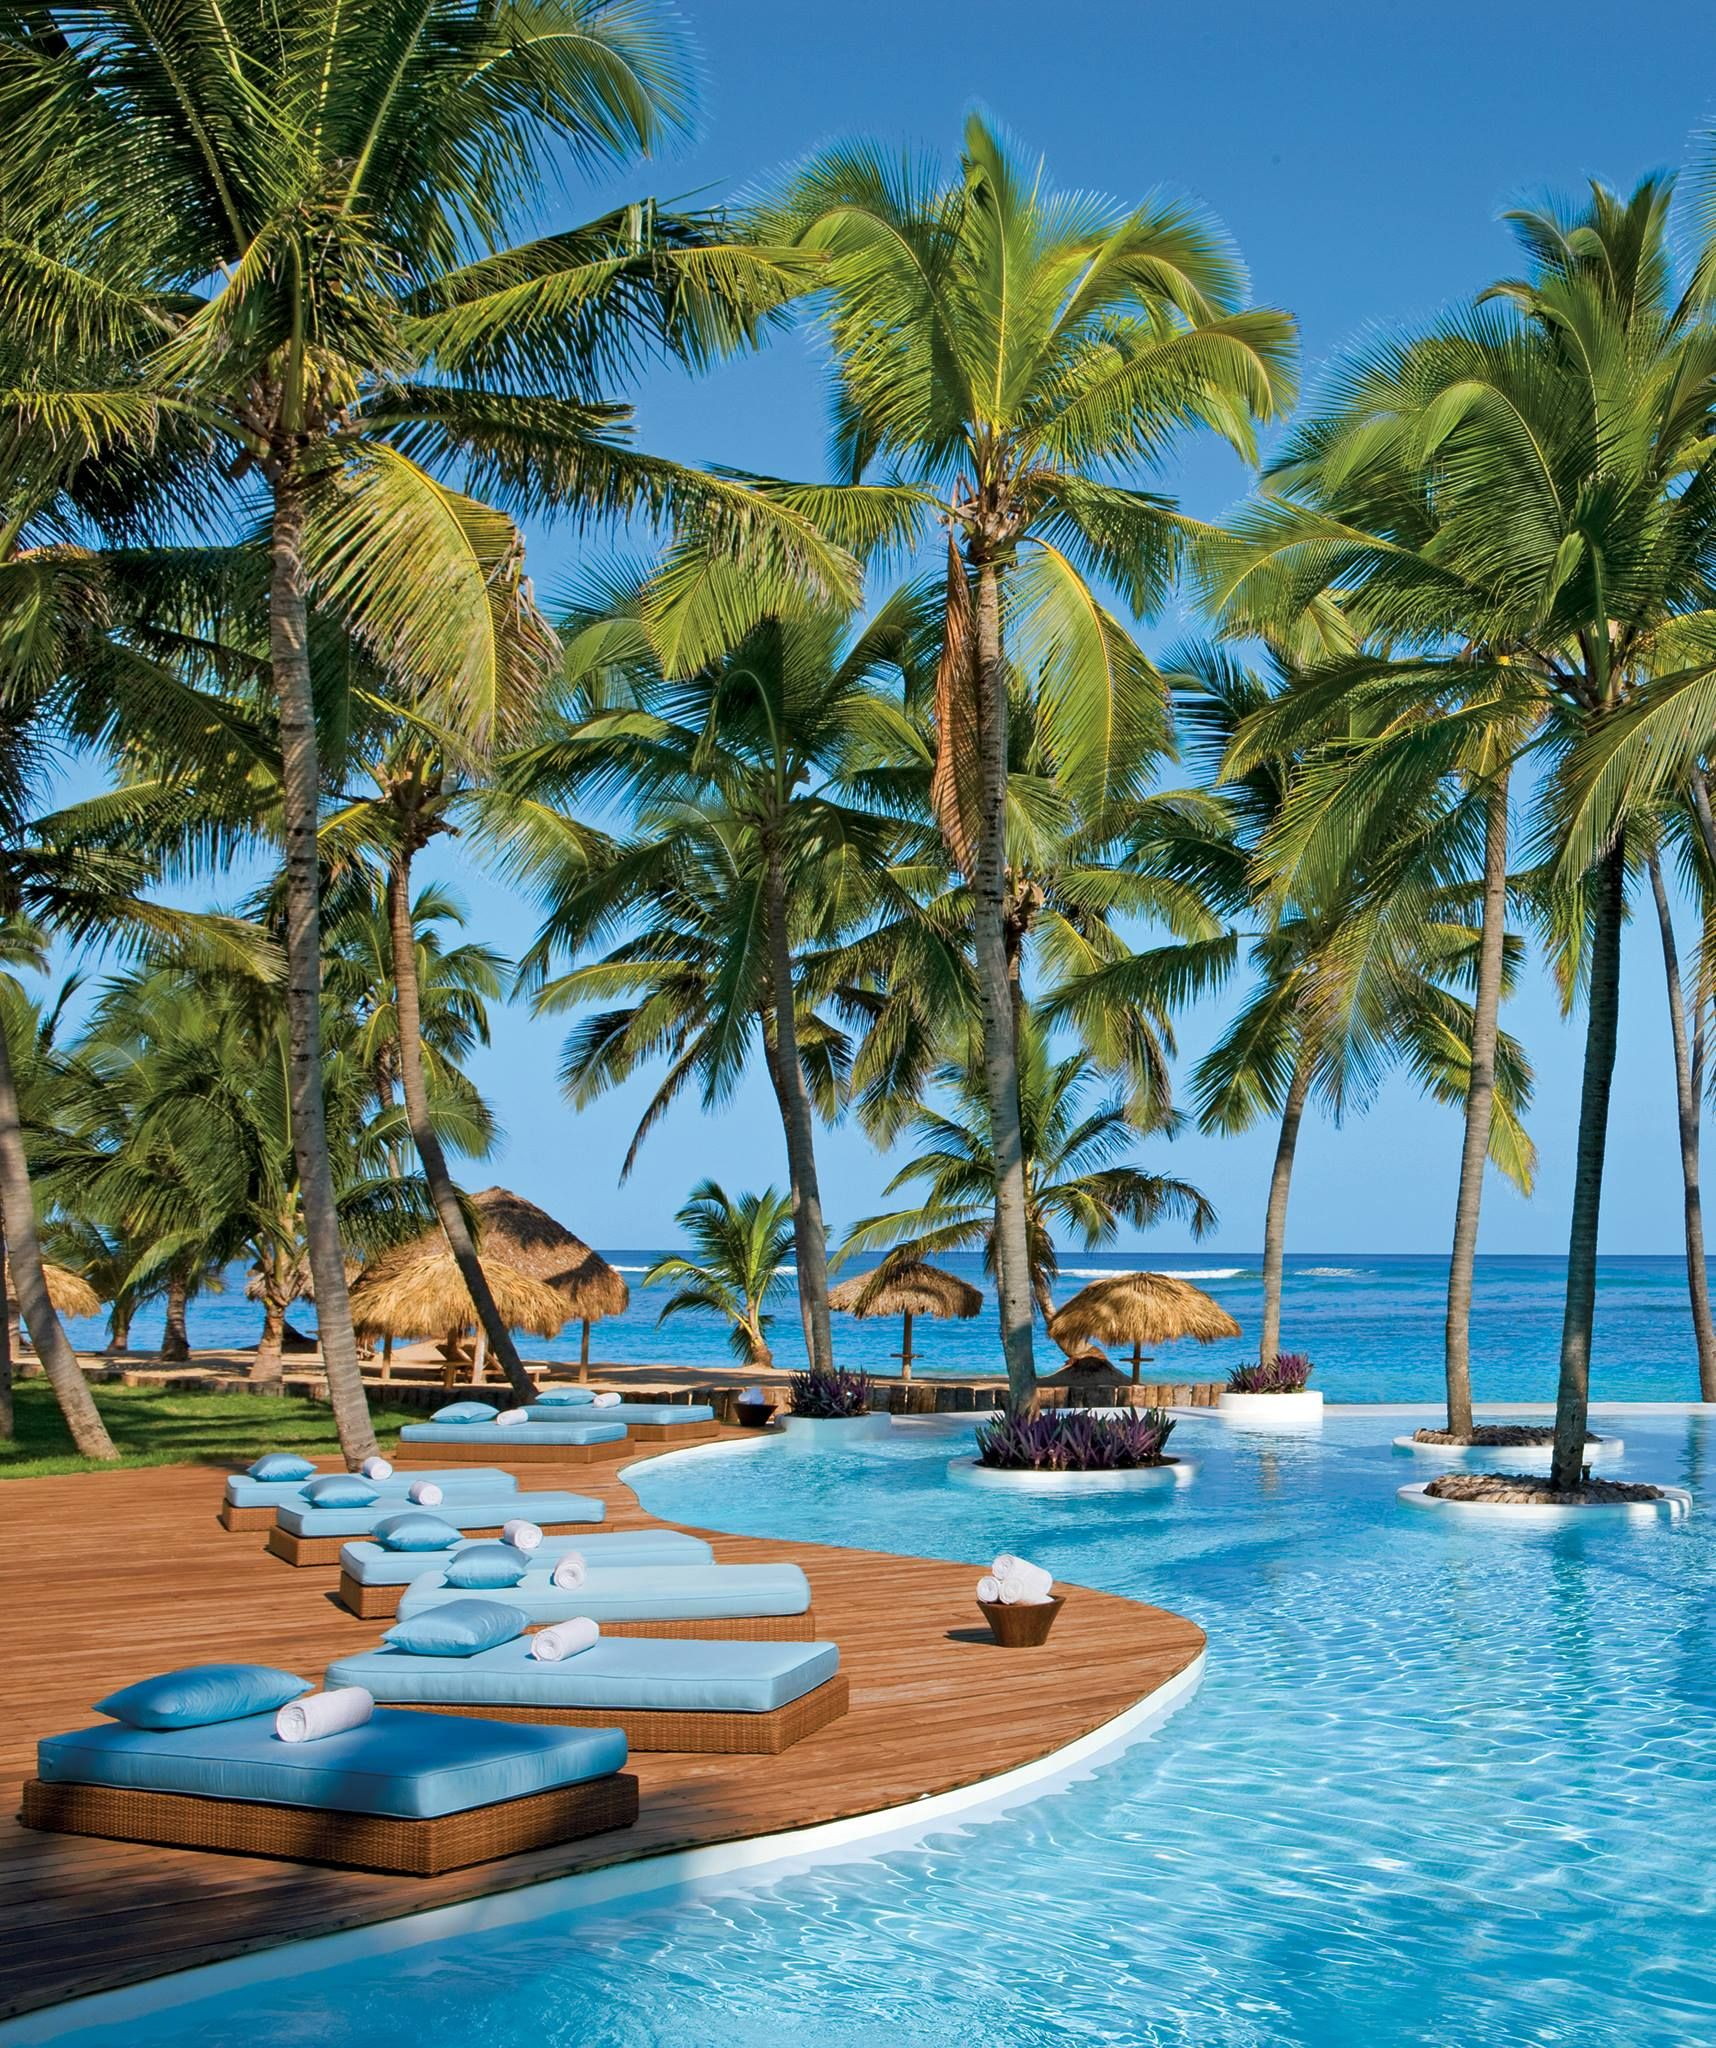 Vacations In Dominican Republic All Inclusive: Zoetry Agua Punta Cana All Inclusive In Punta Cana